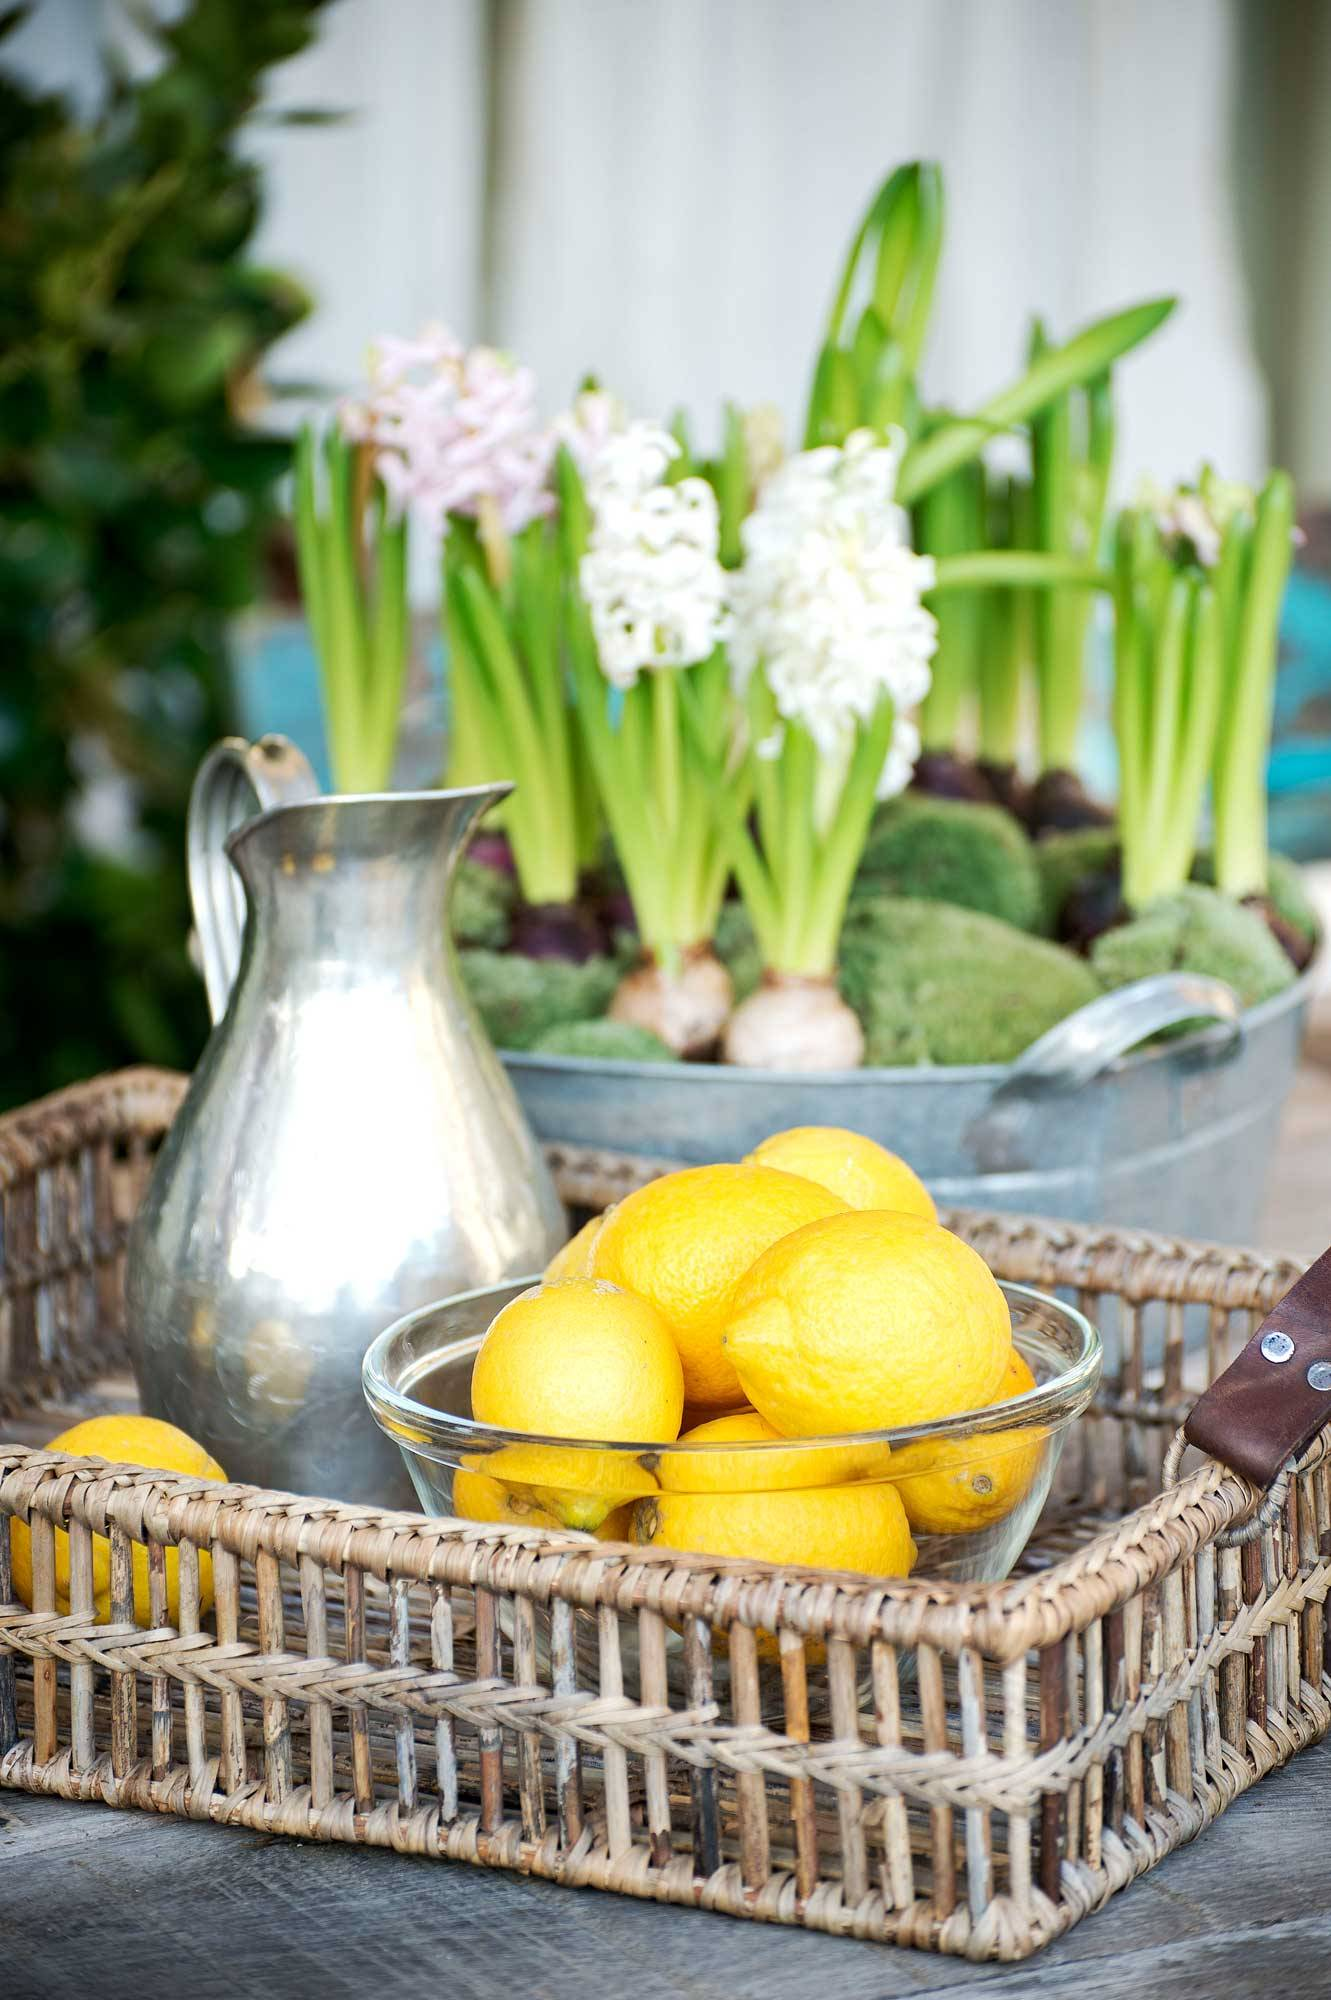 how to clean the glass ceramic 6. Lemon, a natural remedy to clean the glass